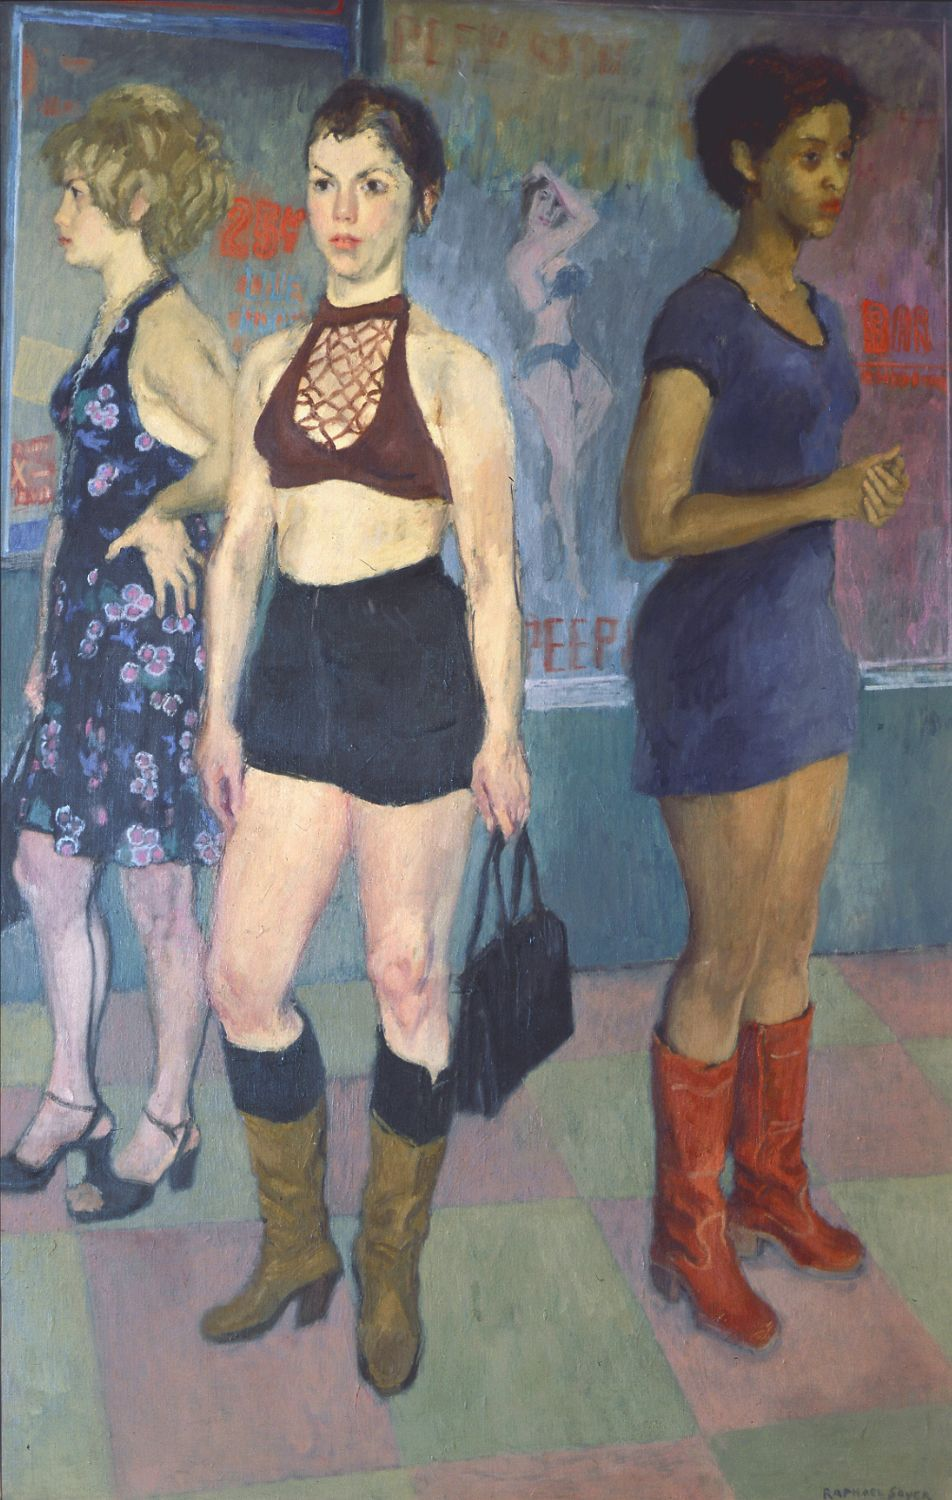 Raphael Soyer, Eighth Avenue, 1977, oil on canvas, 50 x 32 inches